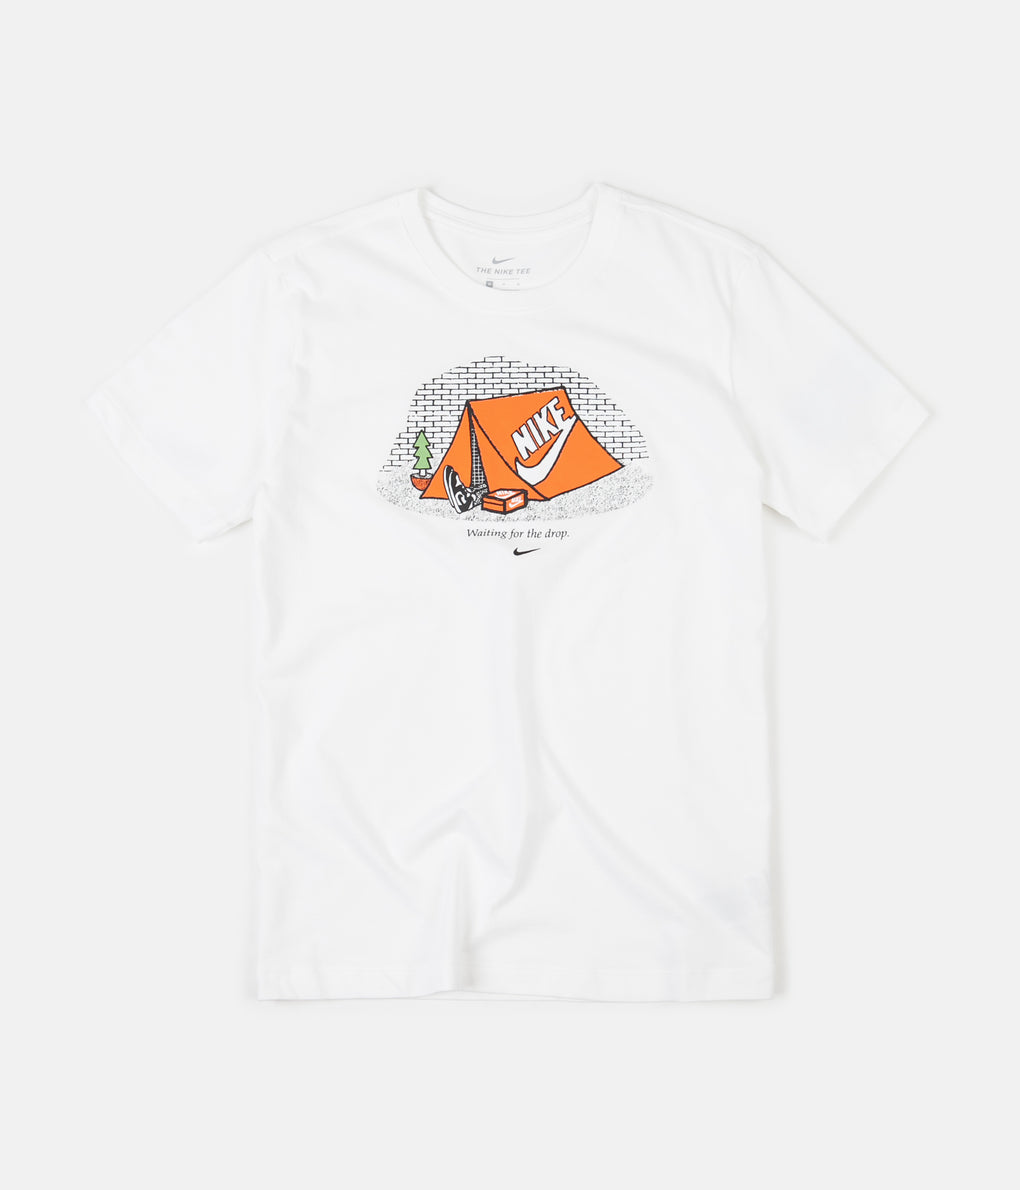 Nike Waiting For The Drop T-Shirt - White